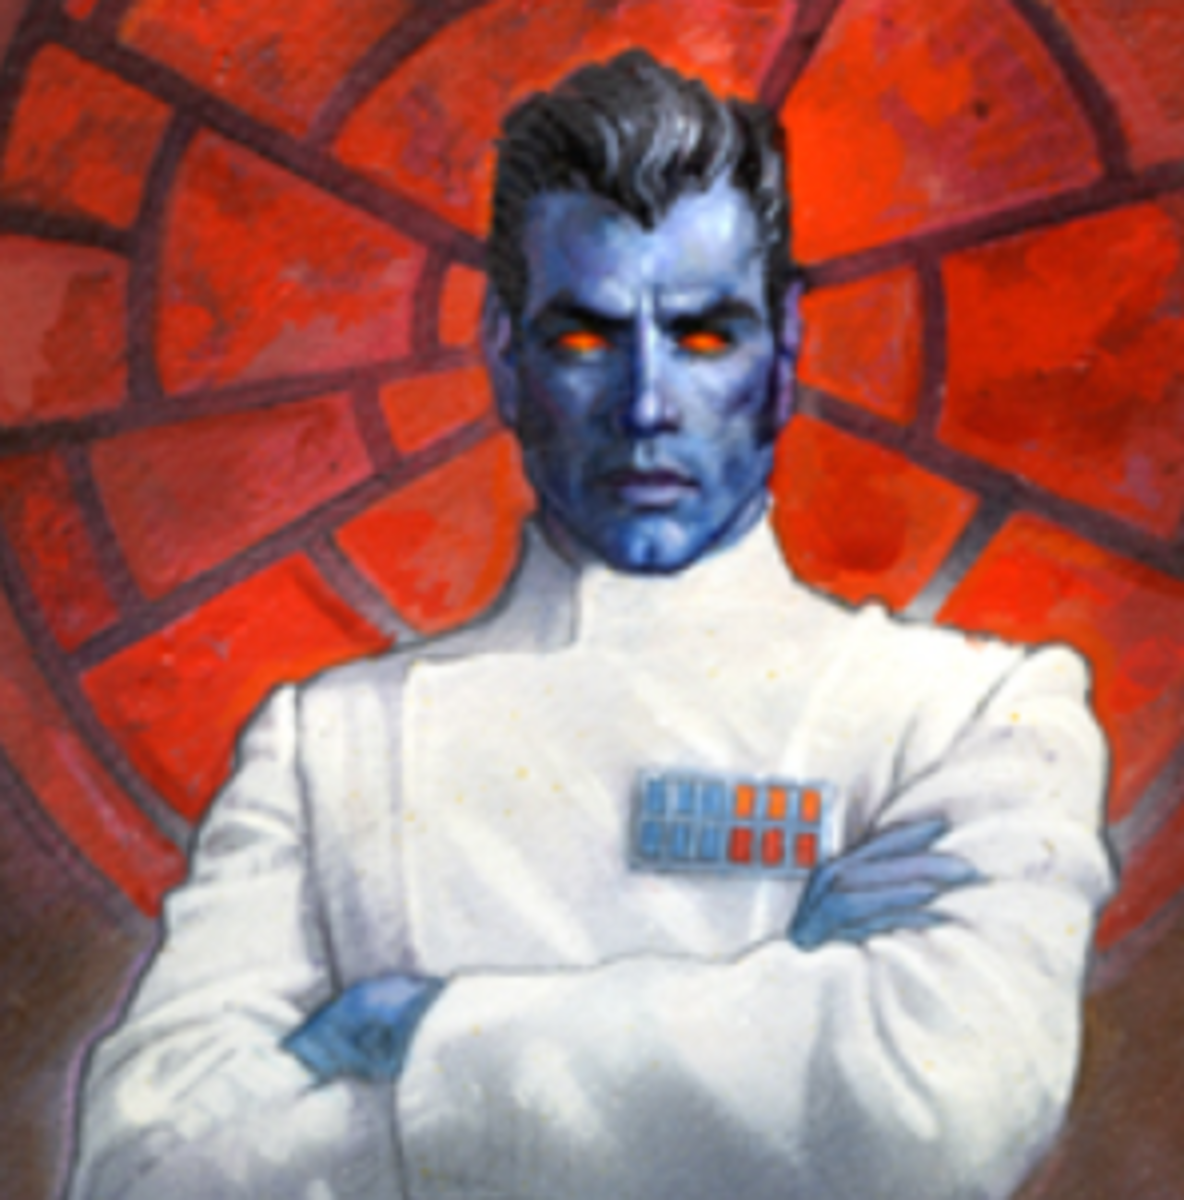 Grand Admiral Thrawn proved that the Imperial fleet had a backbone during his time in charge of the remnants of the Empire.